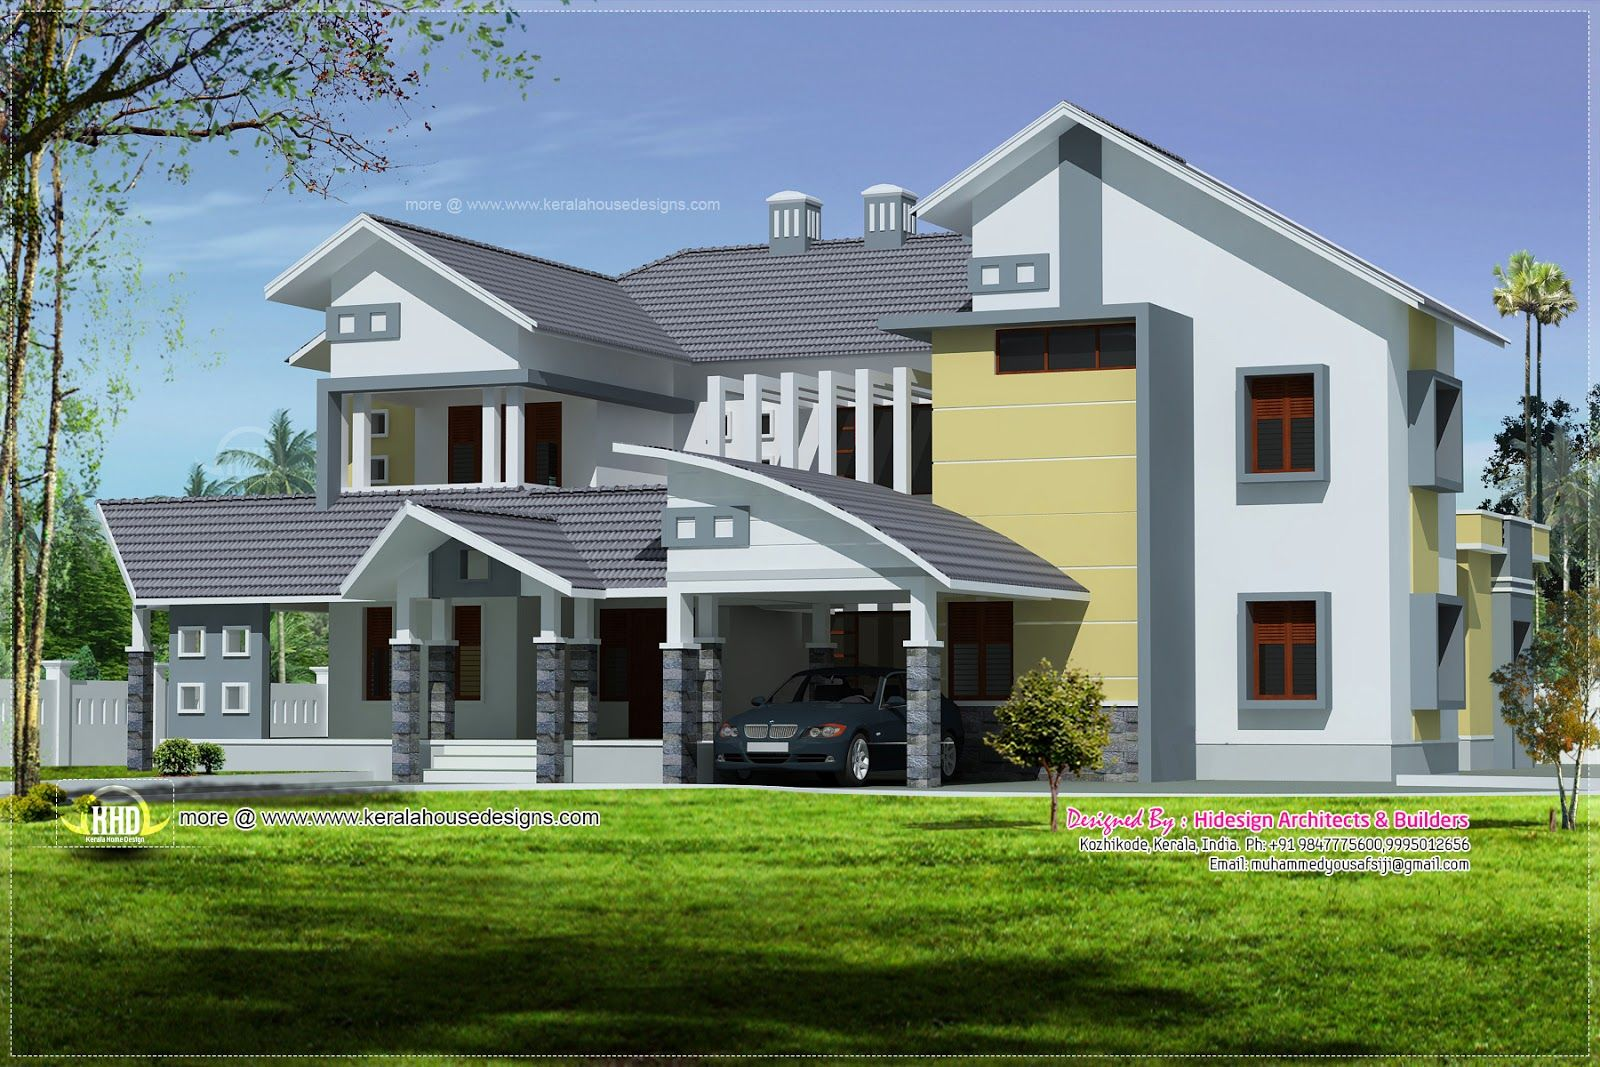 One Story Exterior House Design Modern Luxury House Plans Home Decor